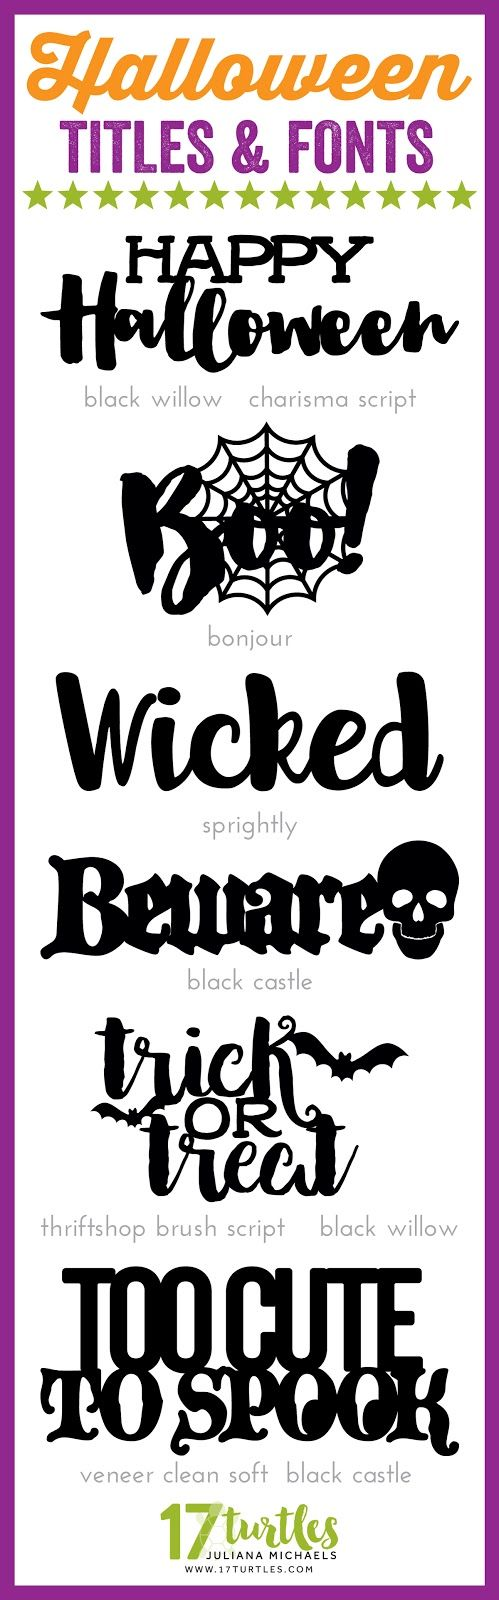 halloween titles and fonts and halloween titles free digital cut file for use with electronic cutting machines such as silhouette cameo and cricut explore - Halloween Writing Font